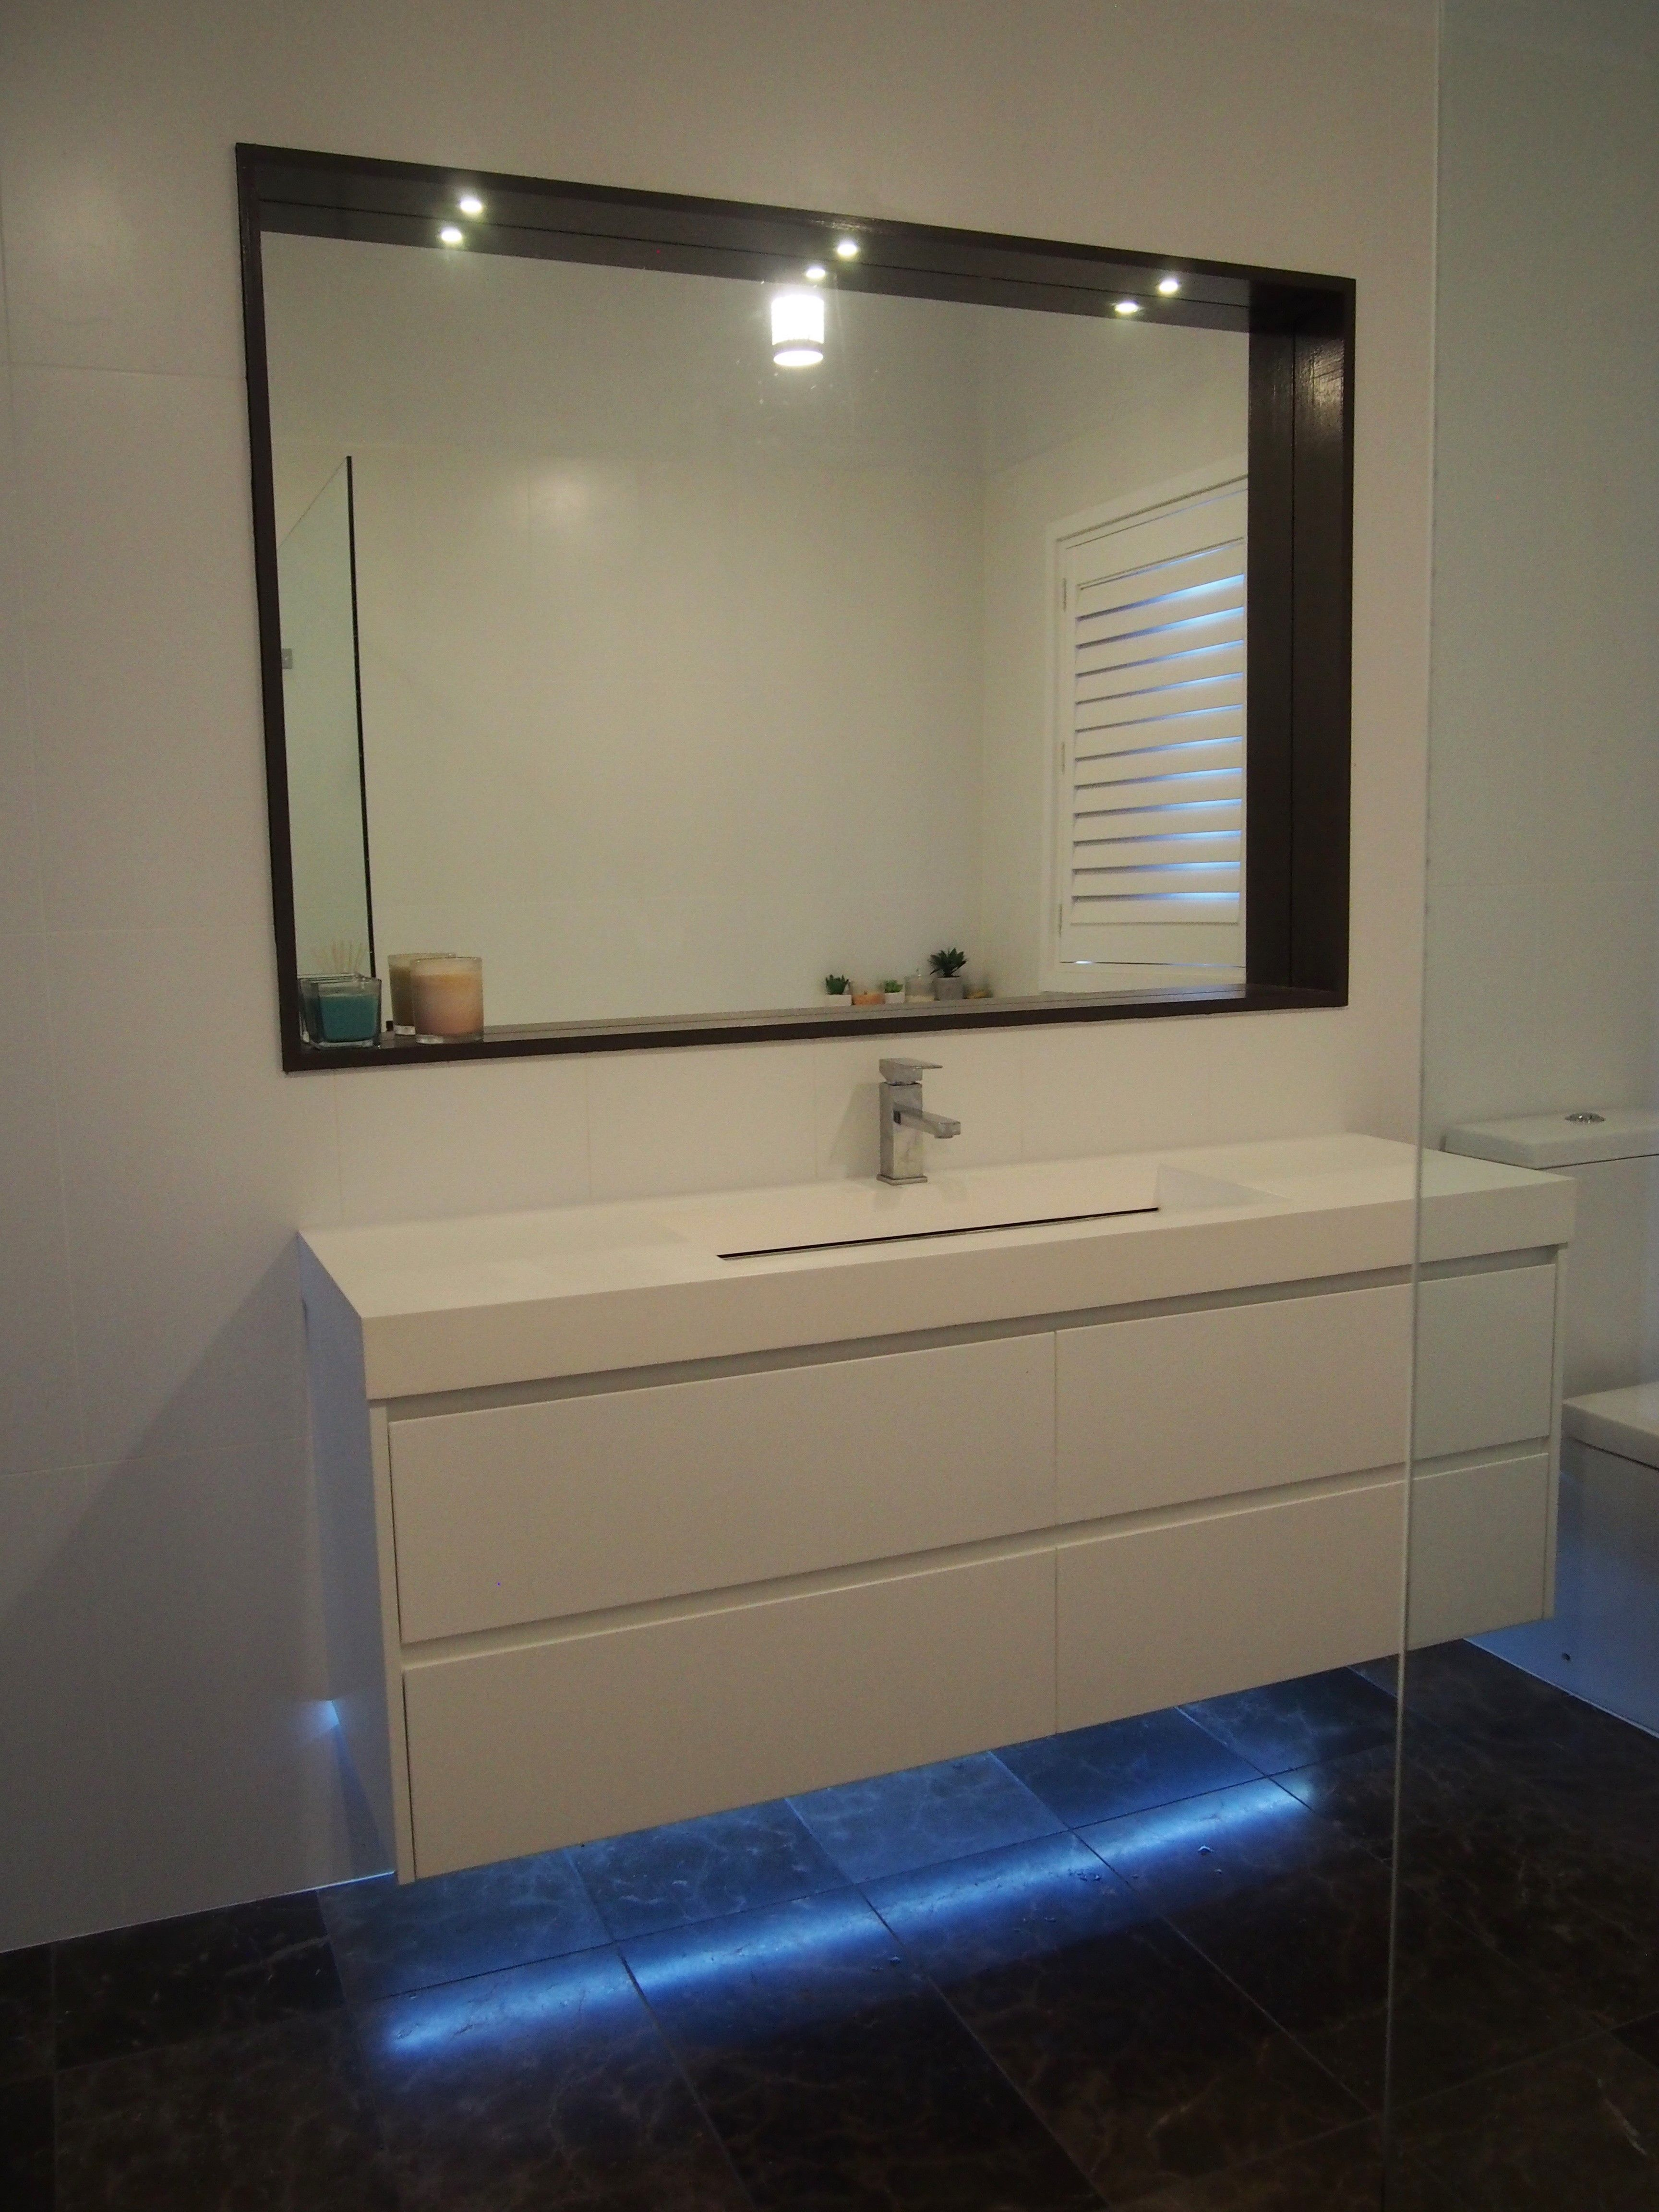 Bathroom Lighting Led Recessed Mirror Lights Under Vanity Led